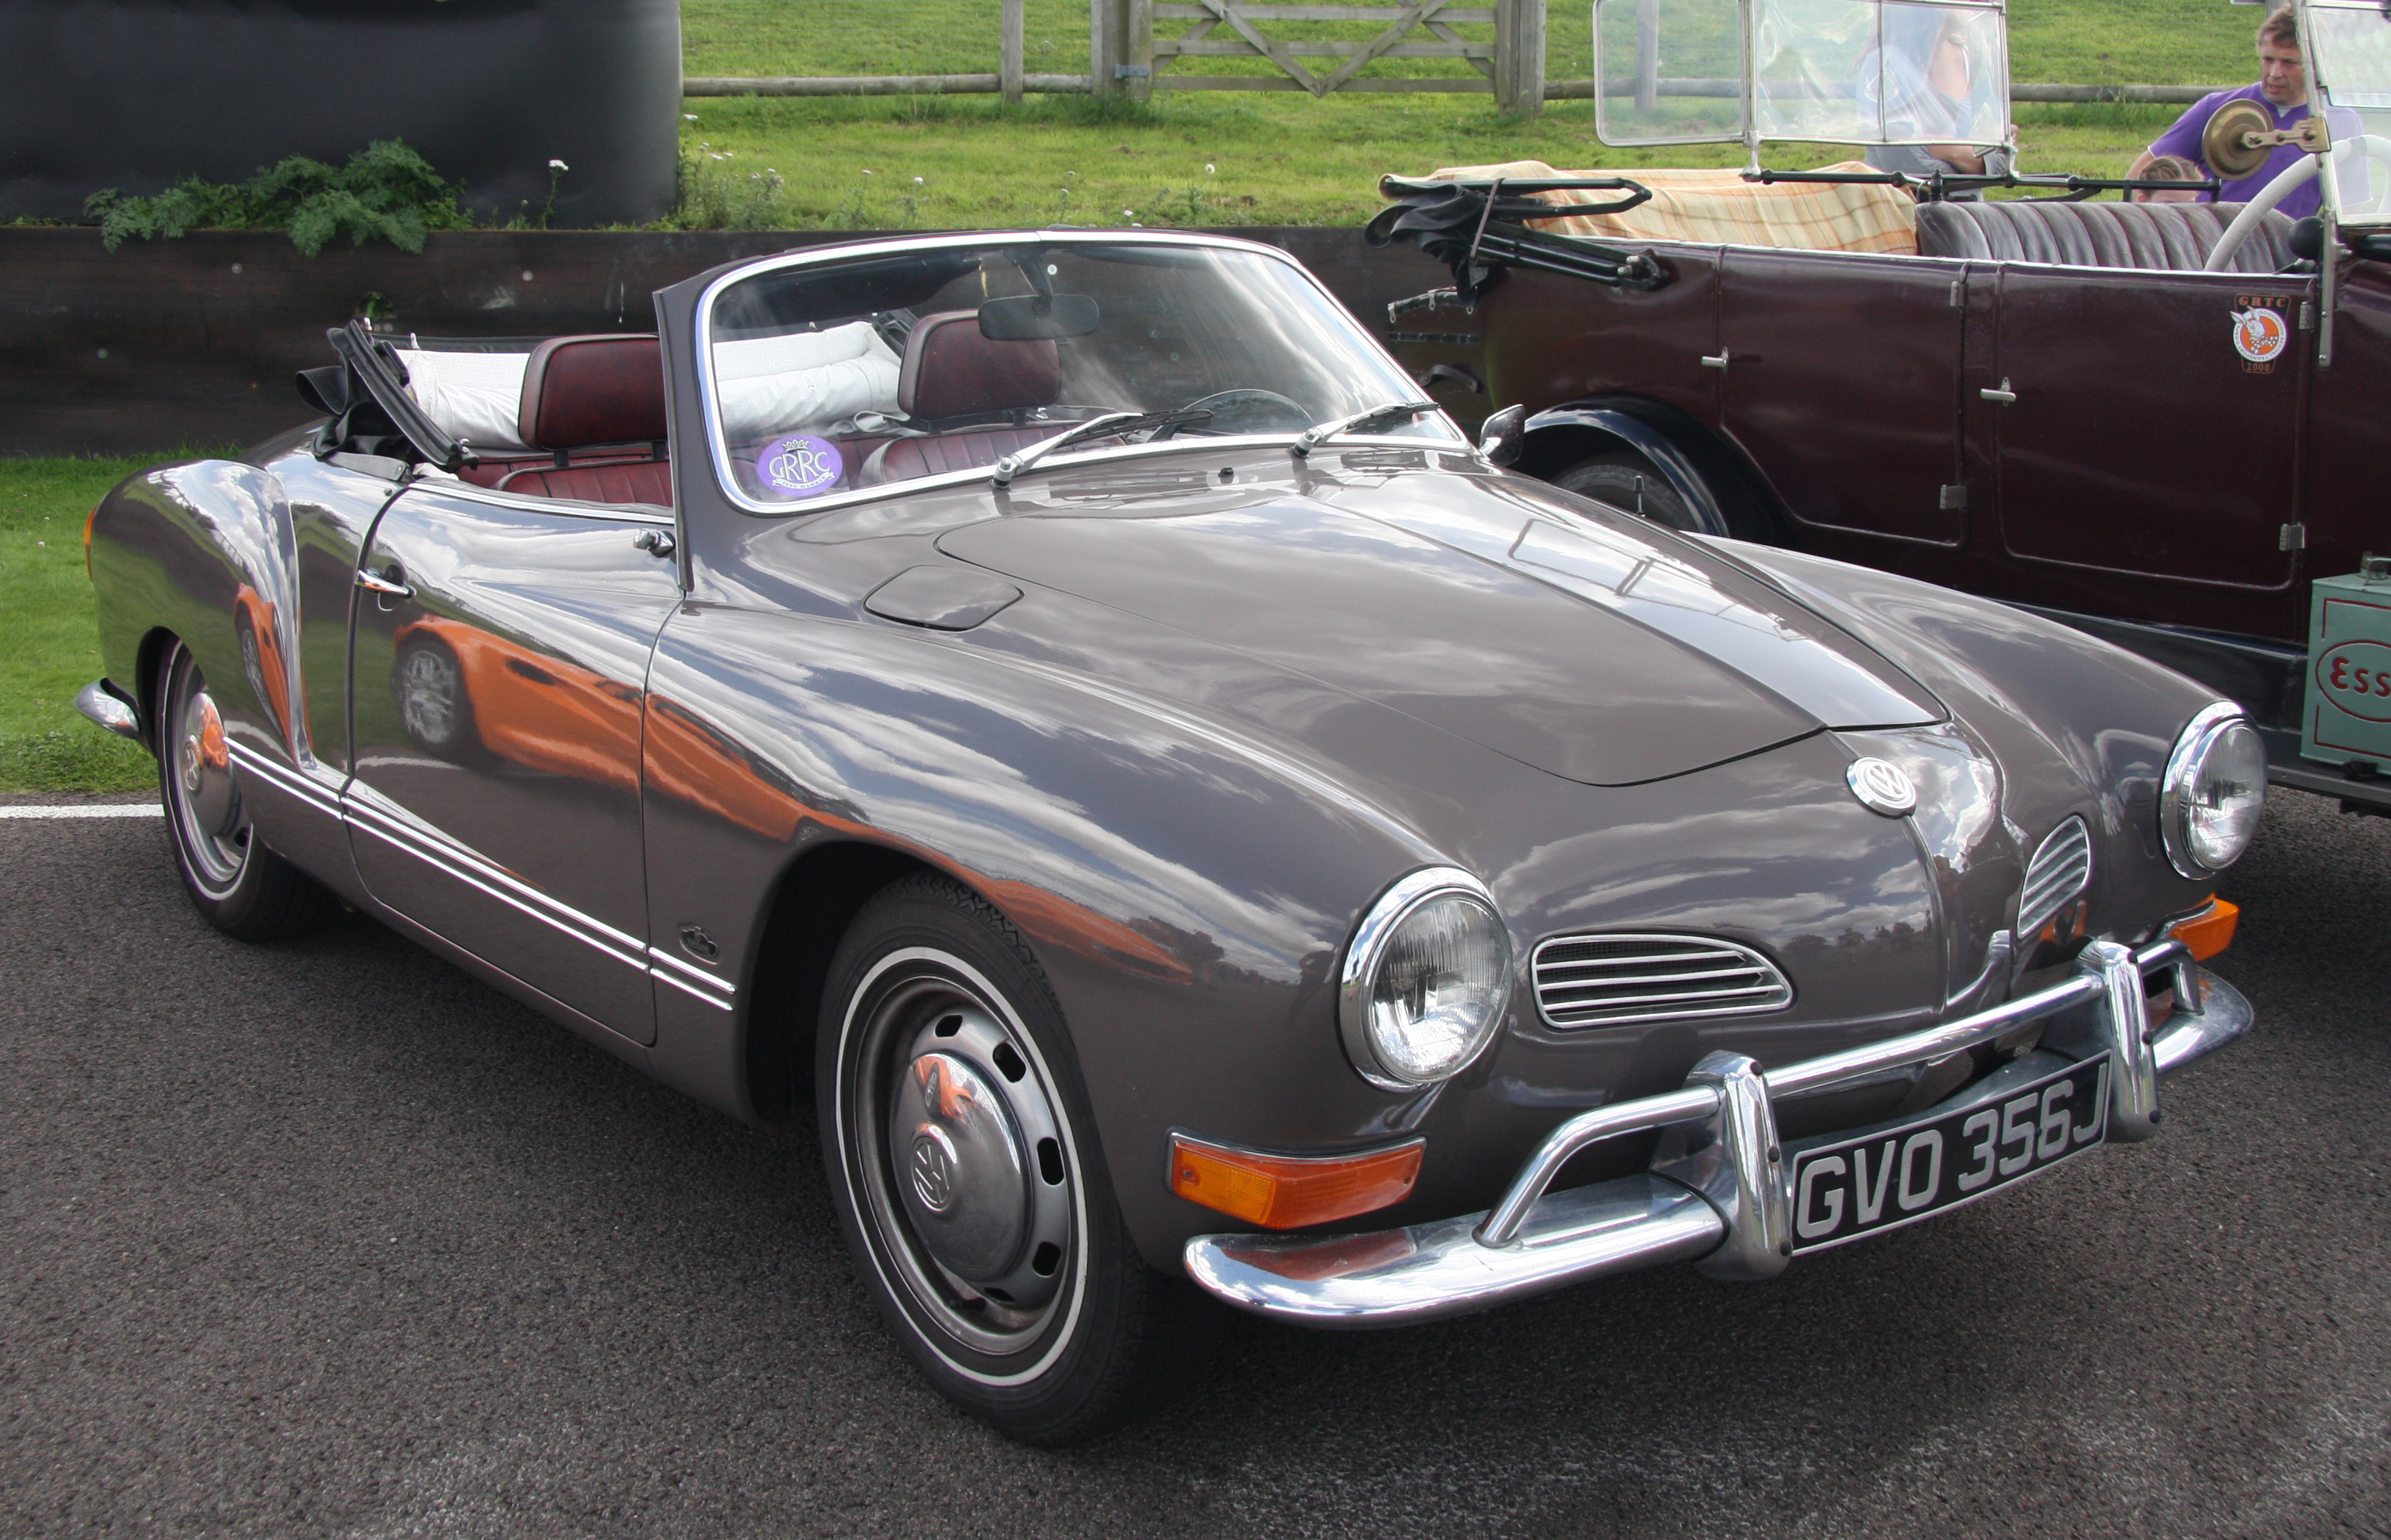 1000+ images about Karmann ghia grey silver on Pinterest ...